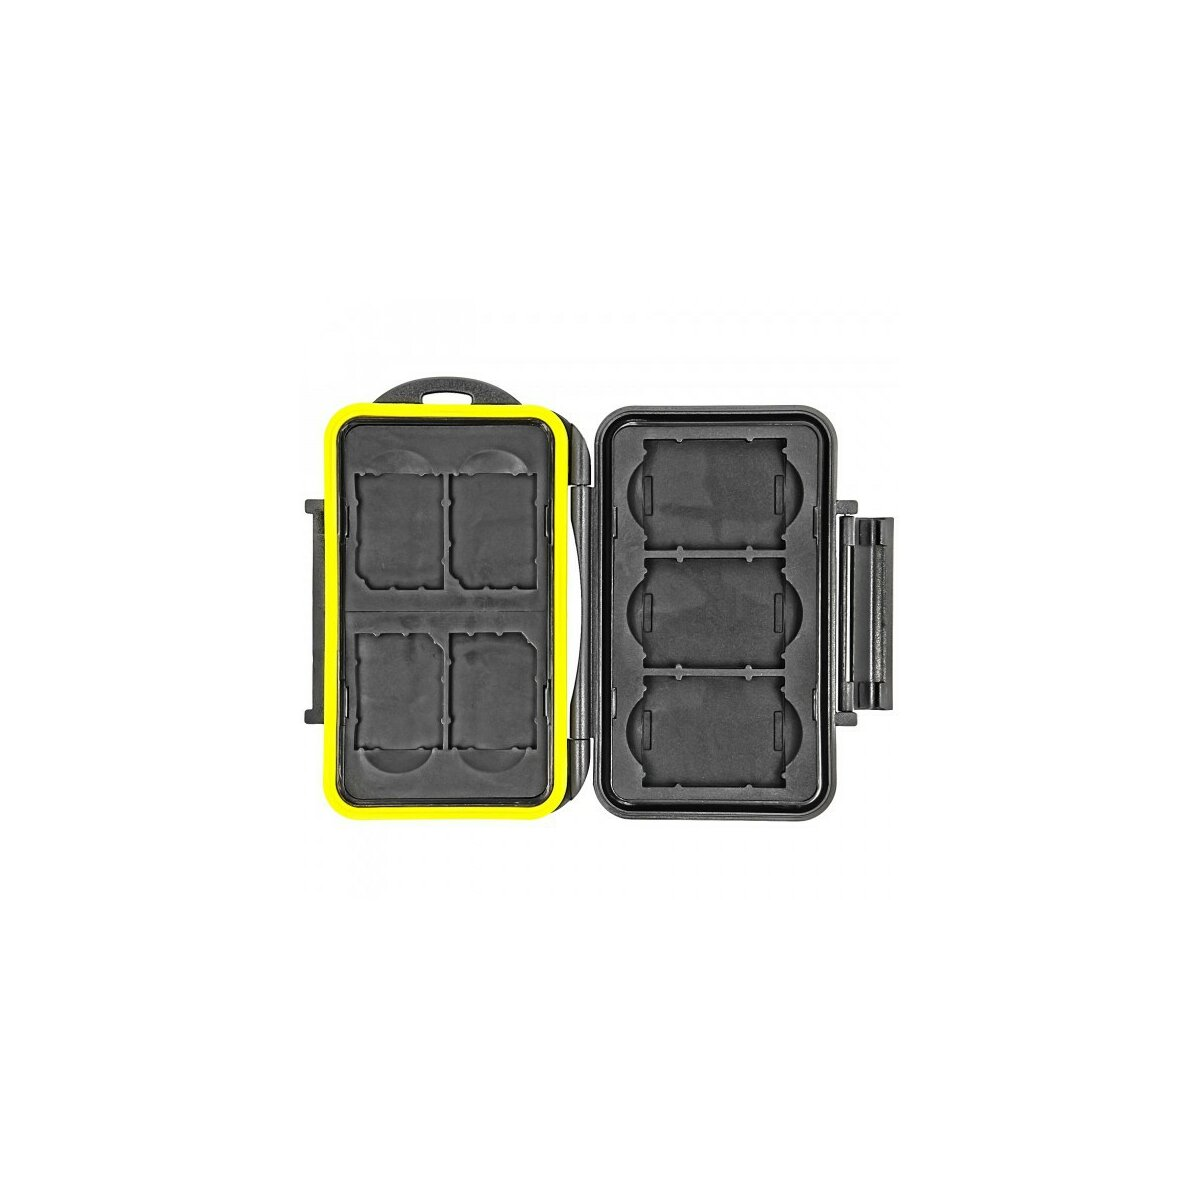 Waterproof Protective Hardcase for Memory Cards | 4x SD SDHC SDXC and 3x XQD